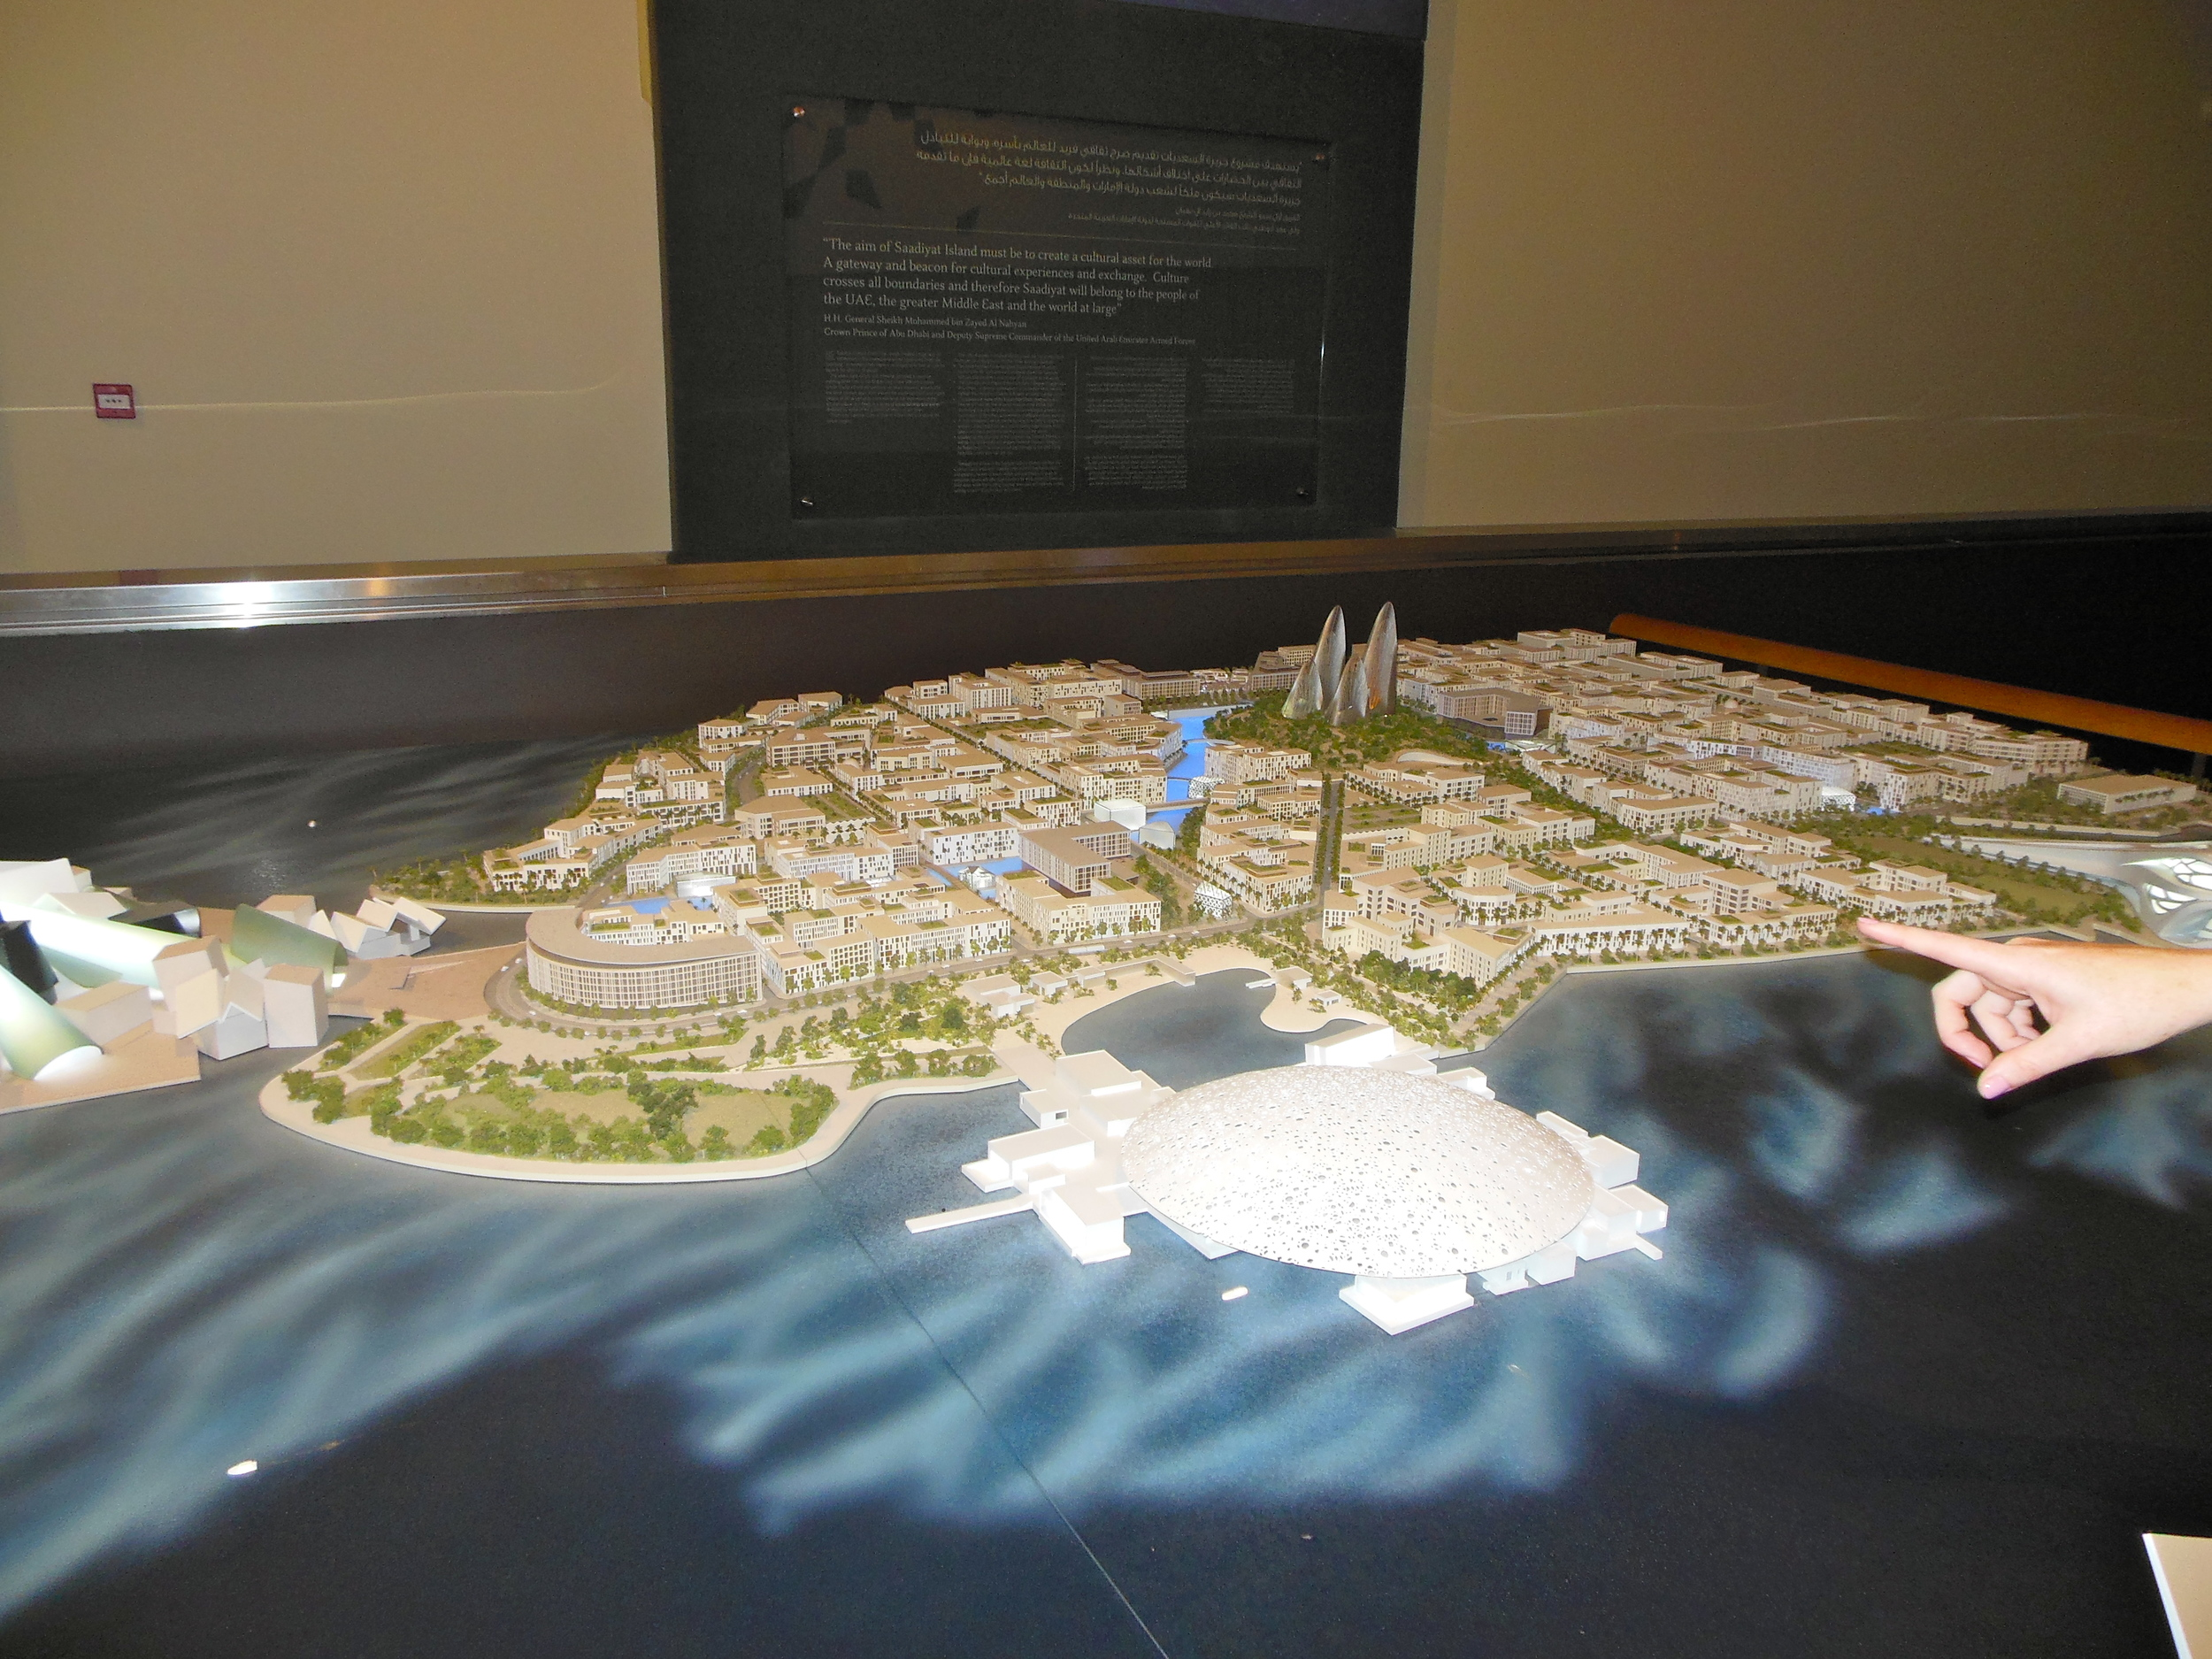 Model of Saadiyat Island Cultural District. The completed cultural district will include the Zayed National Museum, Louvre Abu Dhabi, Guggenheim Abu Dhabi, Maritime Museum, and a Performing Arts Centre. The district already includes the Manarat Al Saadiyat (open since 2009) and the UAE Pavilion (2011). Photo: Lucy Rees